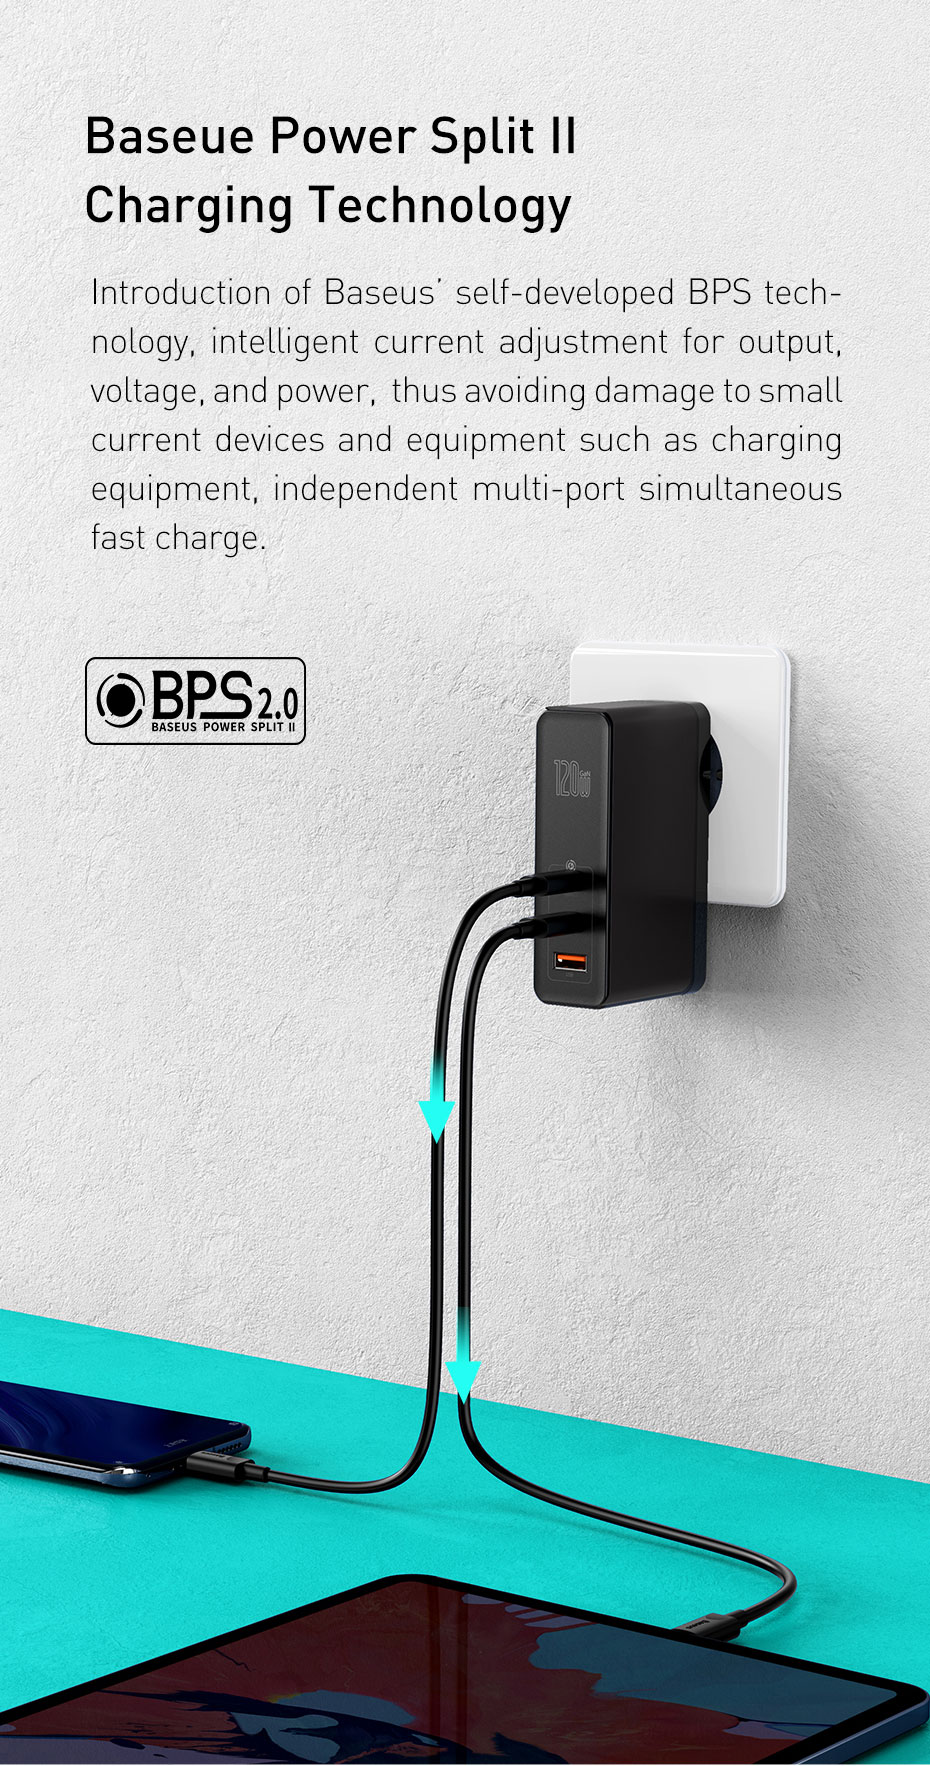 [GaN+SiC Tech] Baseus 120W USB-C Charger 3 Port PD3.0 QC4+ SCP FCP Quick Charge USB Wall Charger US Plug Adapter With 100W USB-C to USB-C Power Delivery Cable